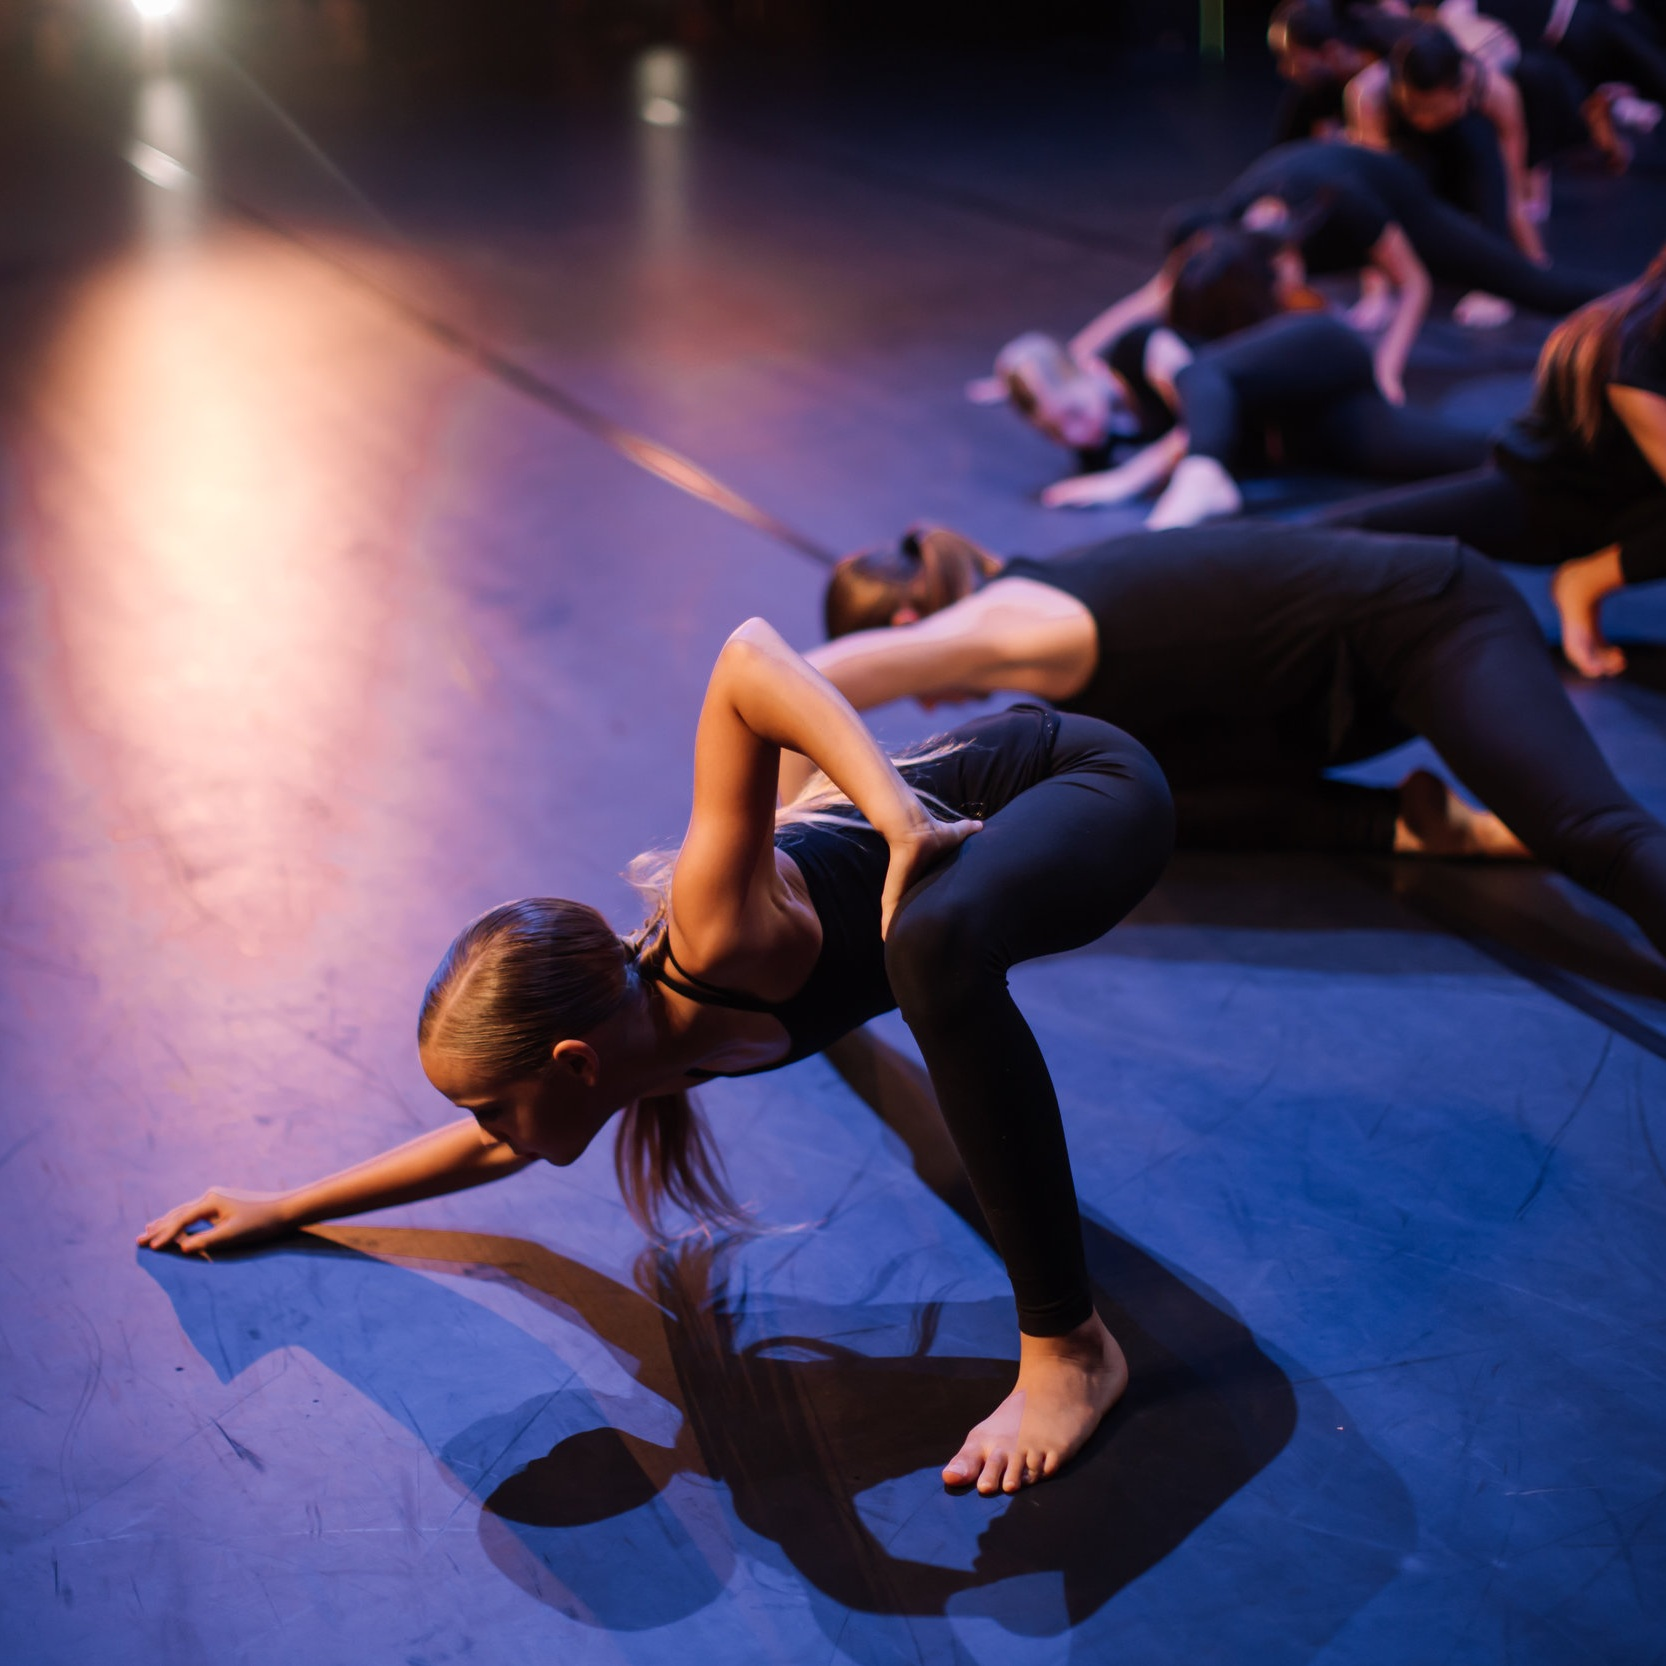 Teen Division dancers performing together on stage. Photo © Emily Duncan